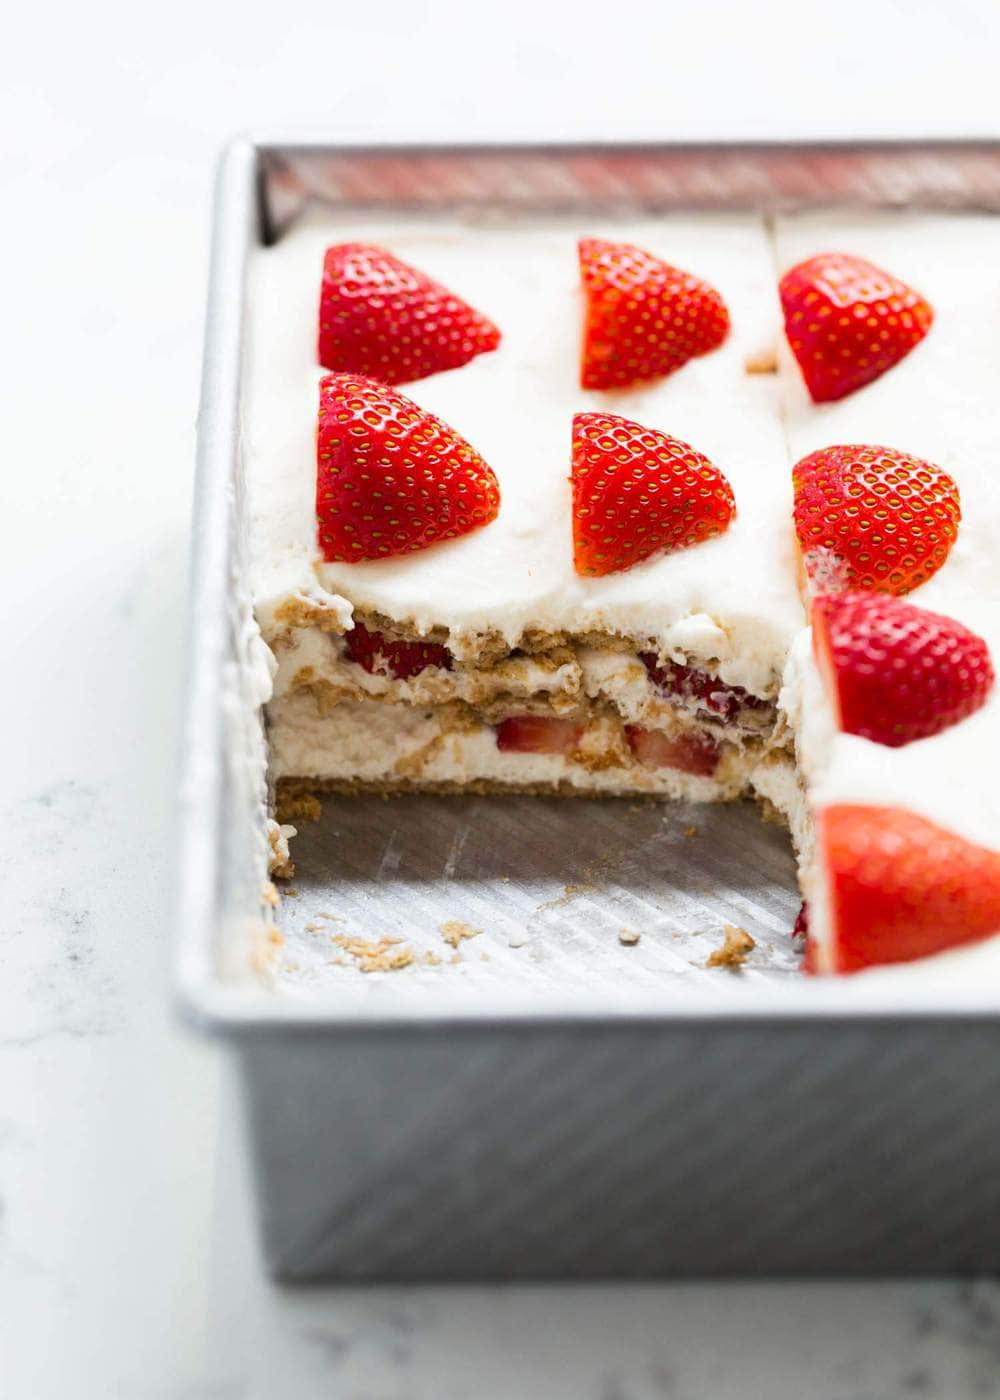 icebox cake topped with strawberries in a silver pan with one piece removed